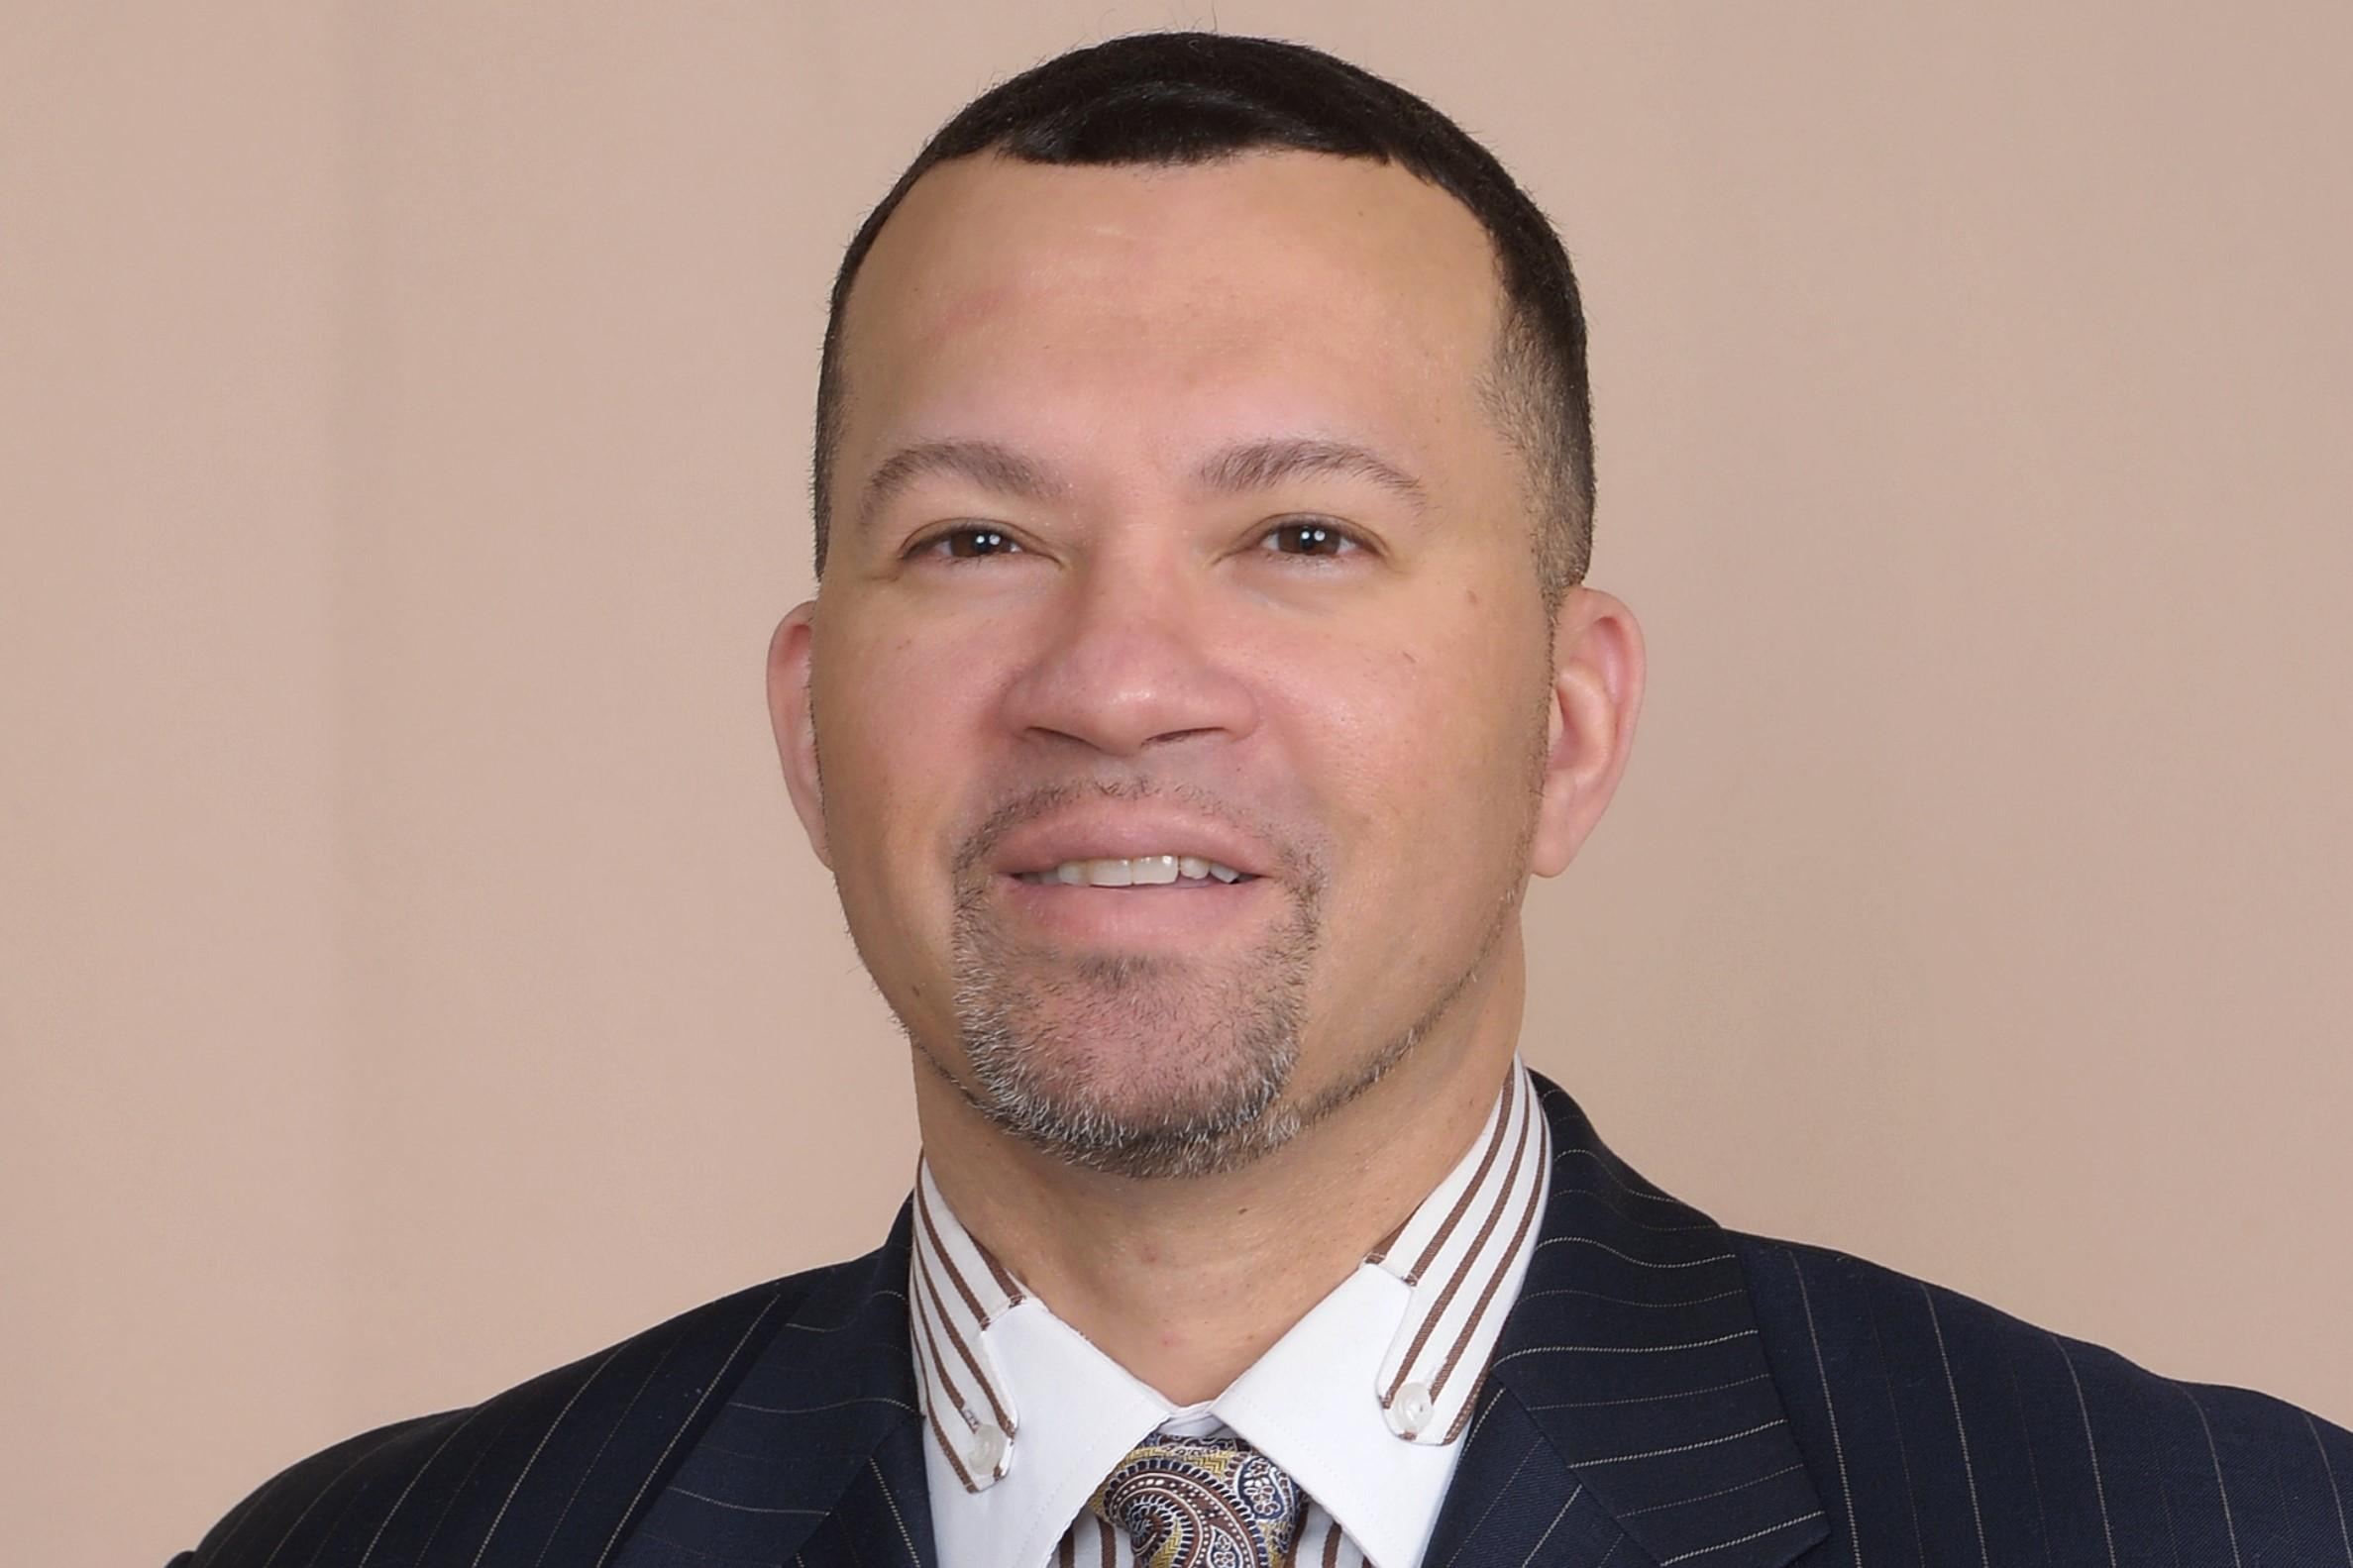 ALFRED THOMAS BALDWIN  Your Financial Professional & Insurance Agent